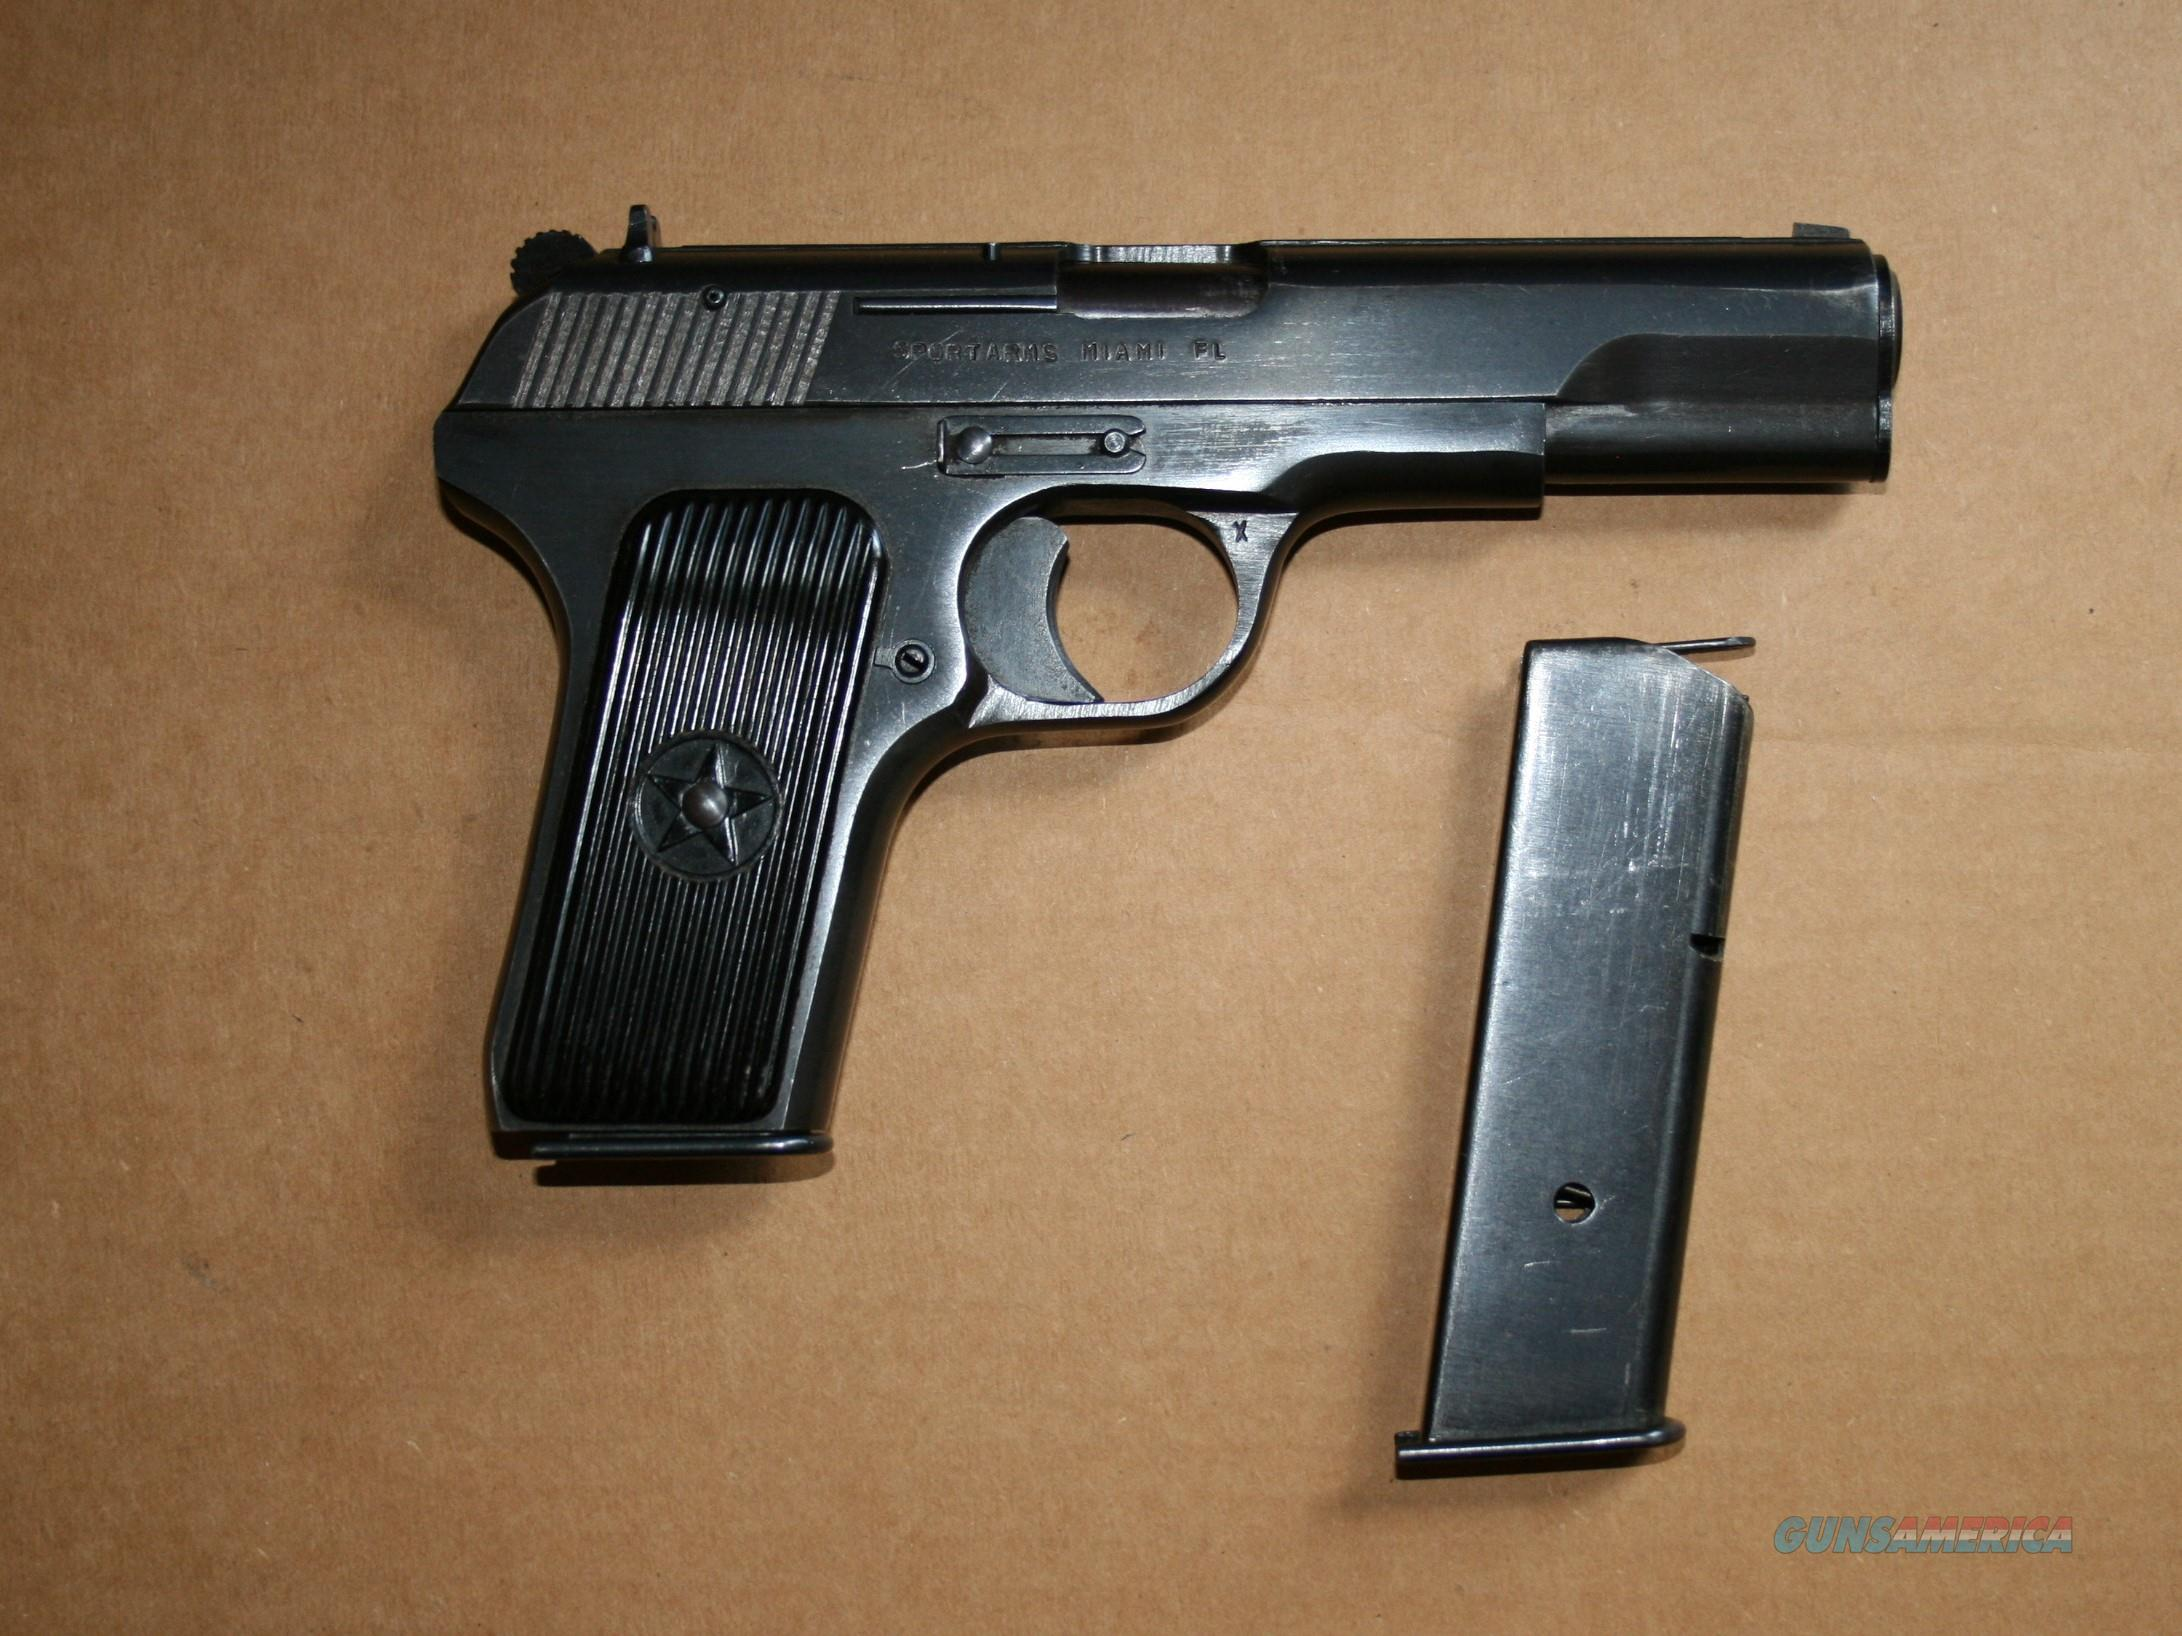 Norinco Chinese Tokarev Model 213 Pistol 9mm  Guns > Pistols > Norinco Pistols